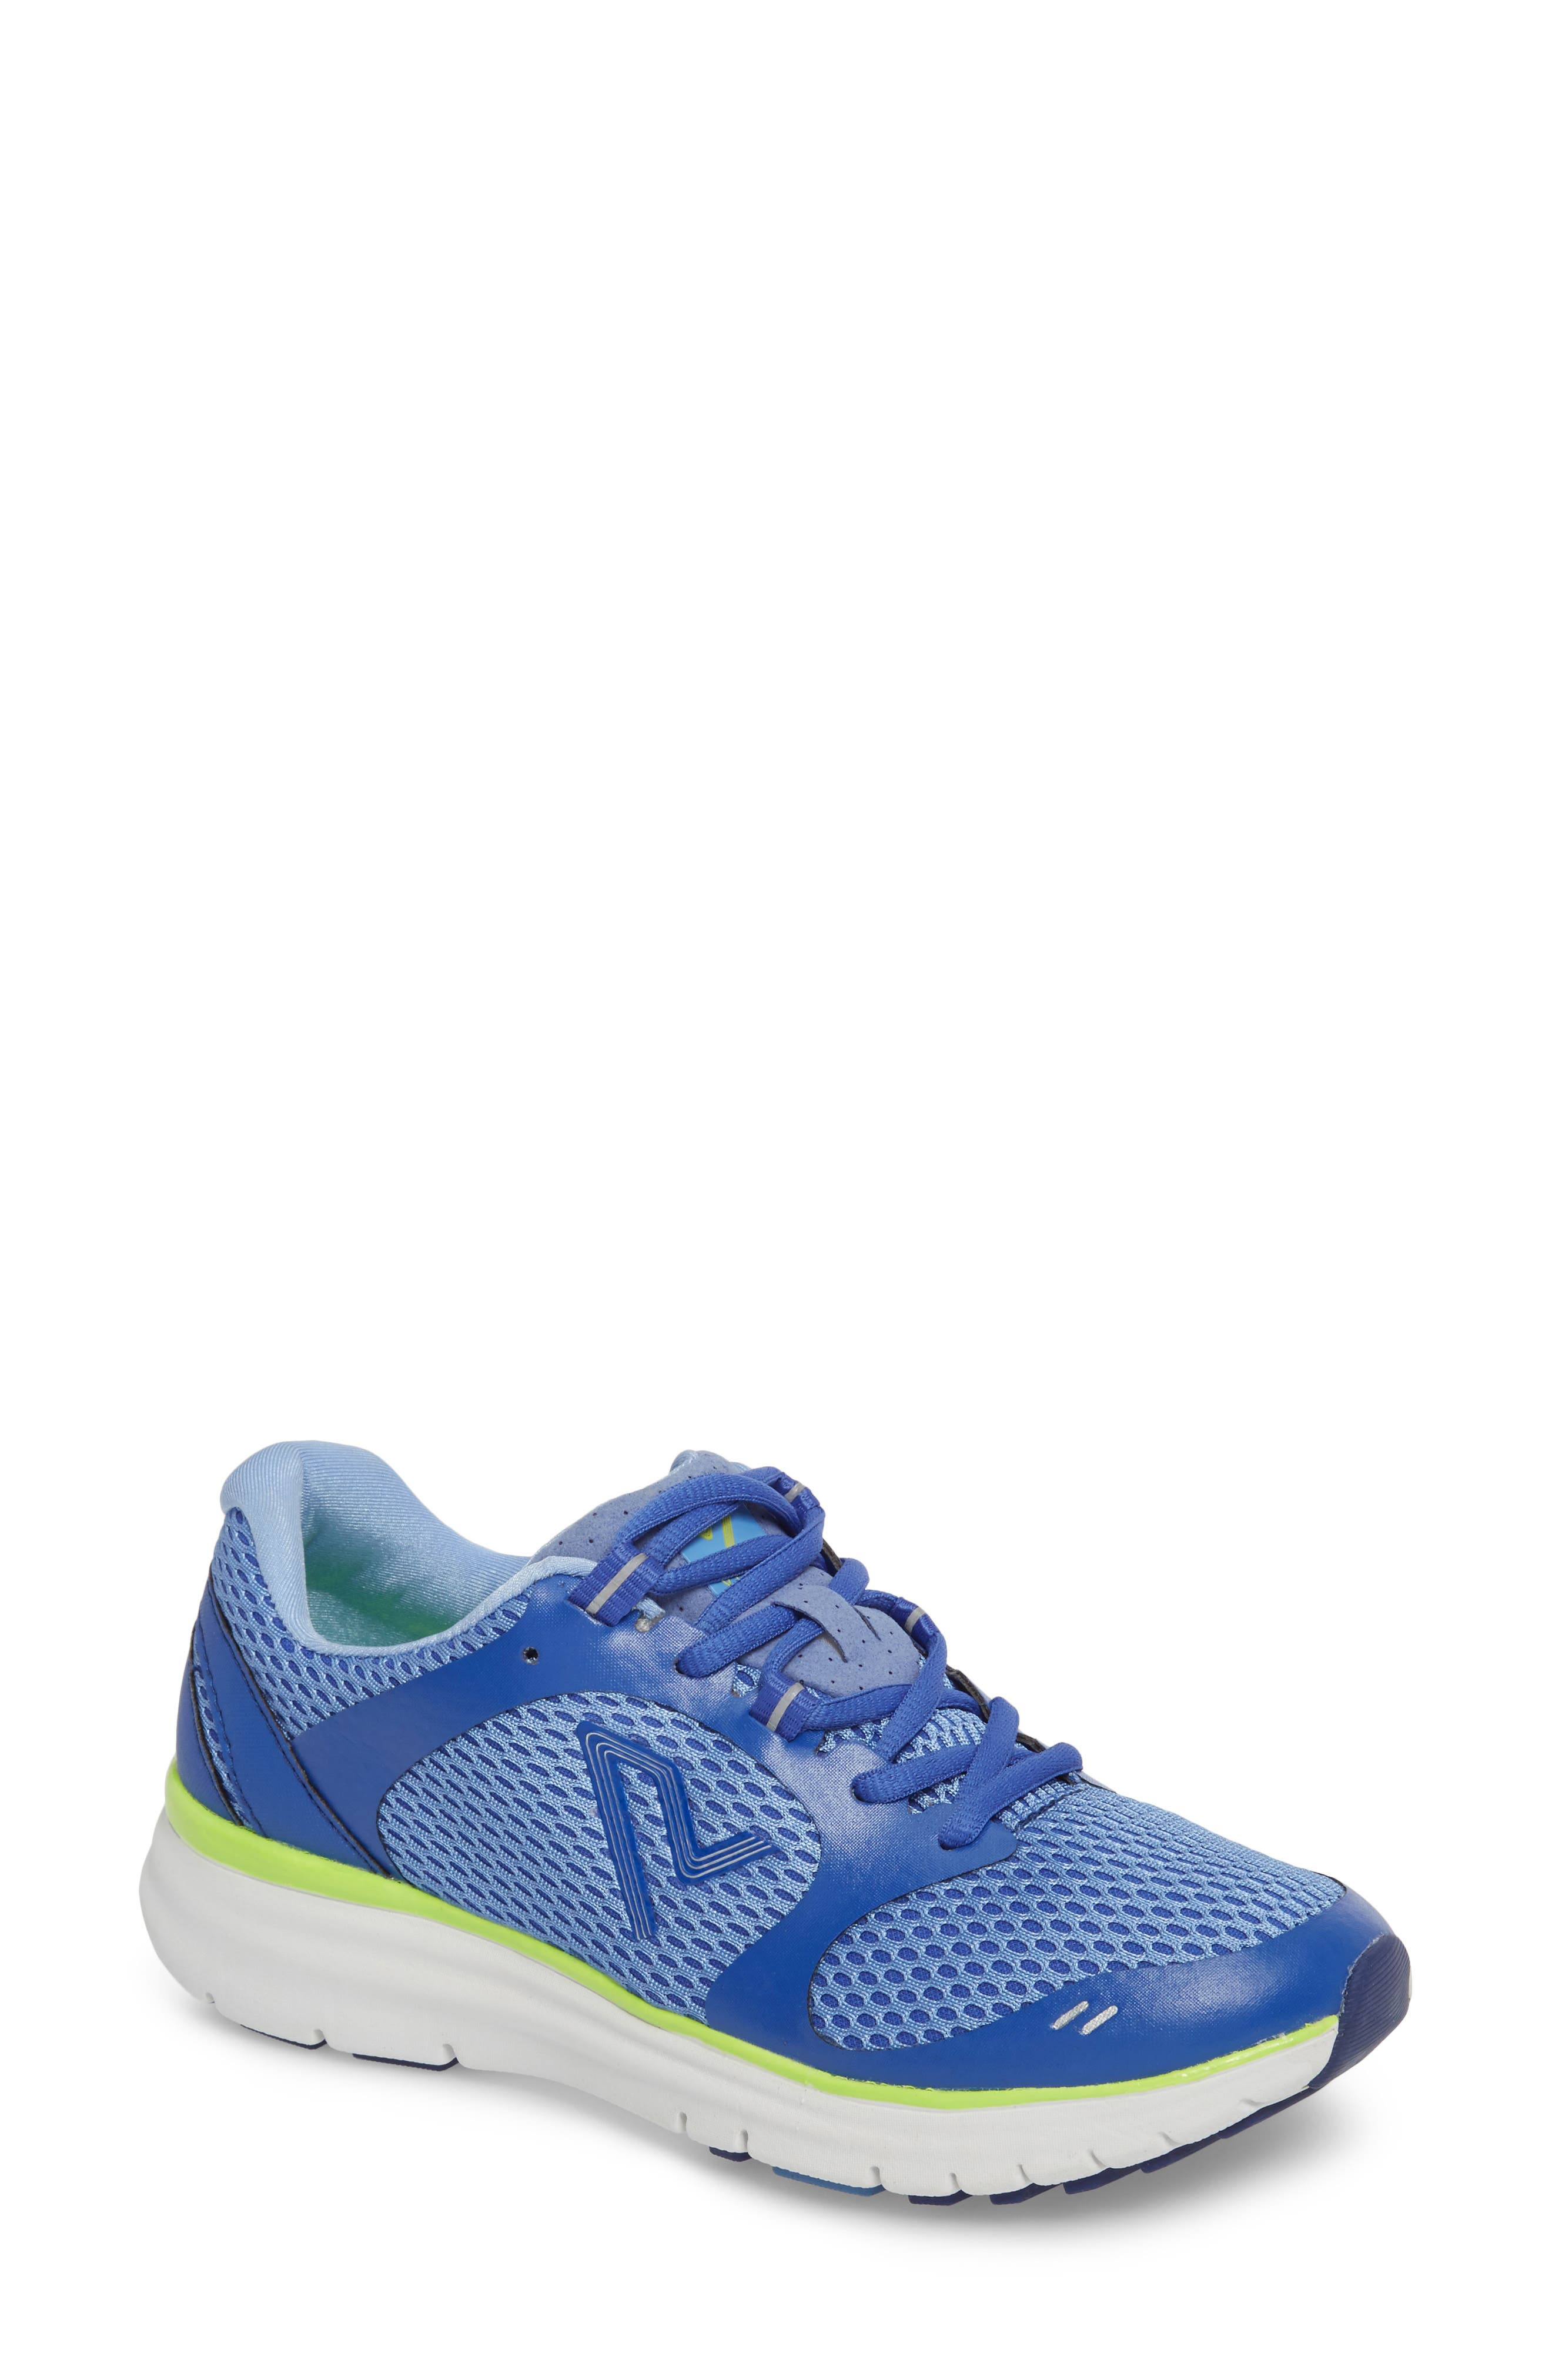 Elation Sneaker,                         Main,                         color, BLUE/ YELLOW